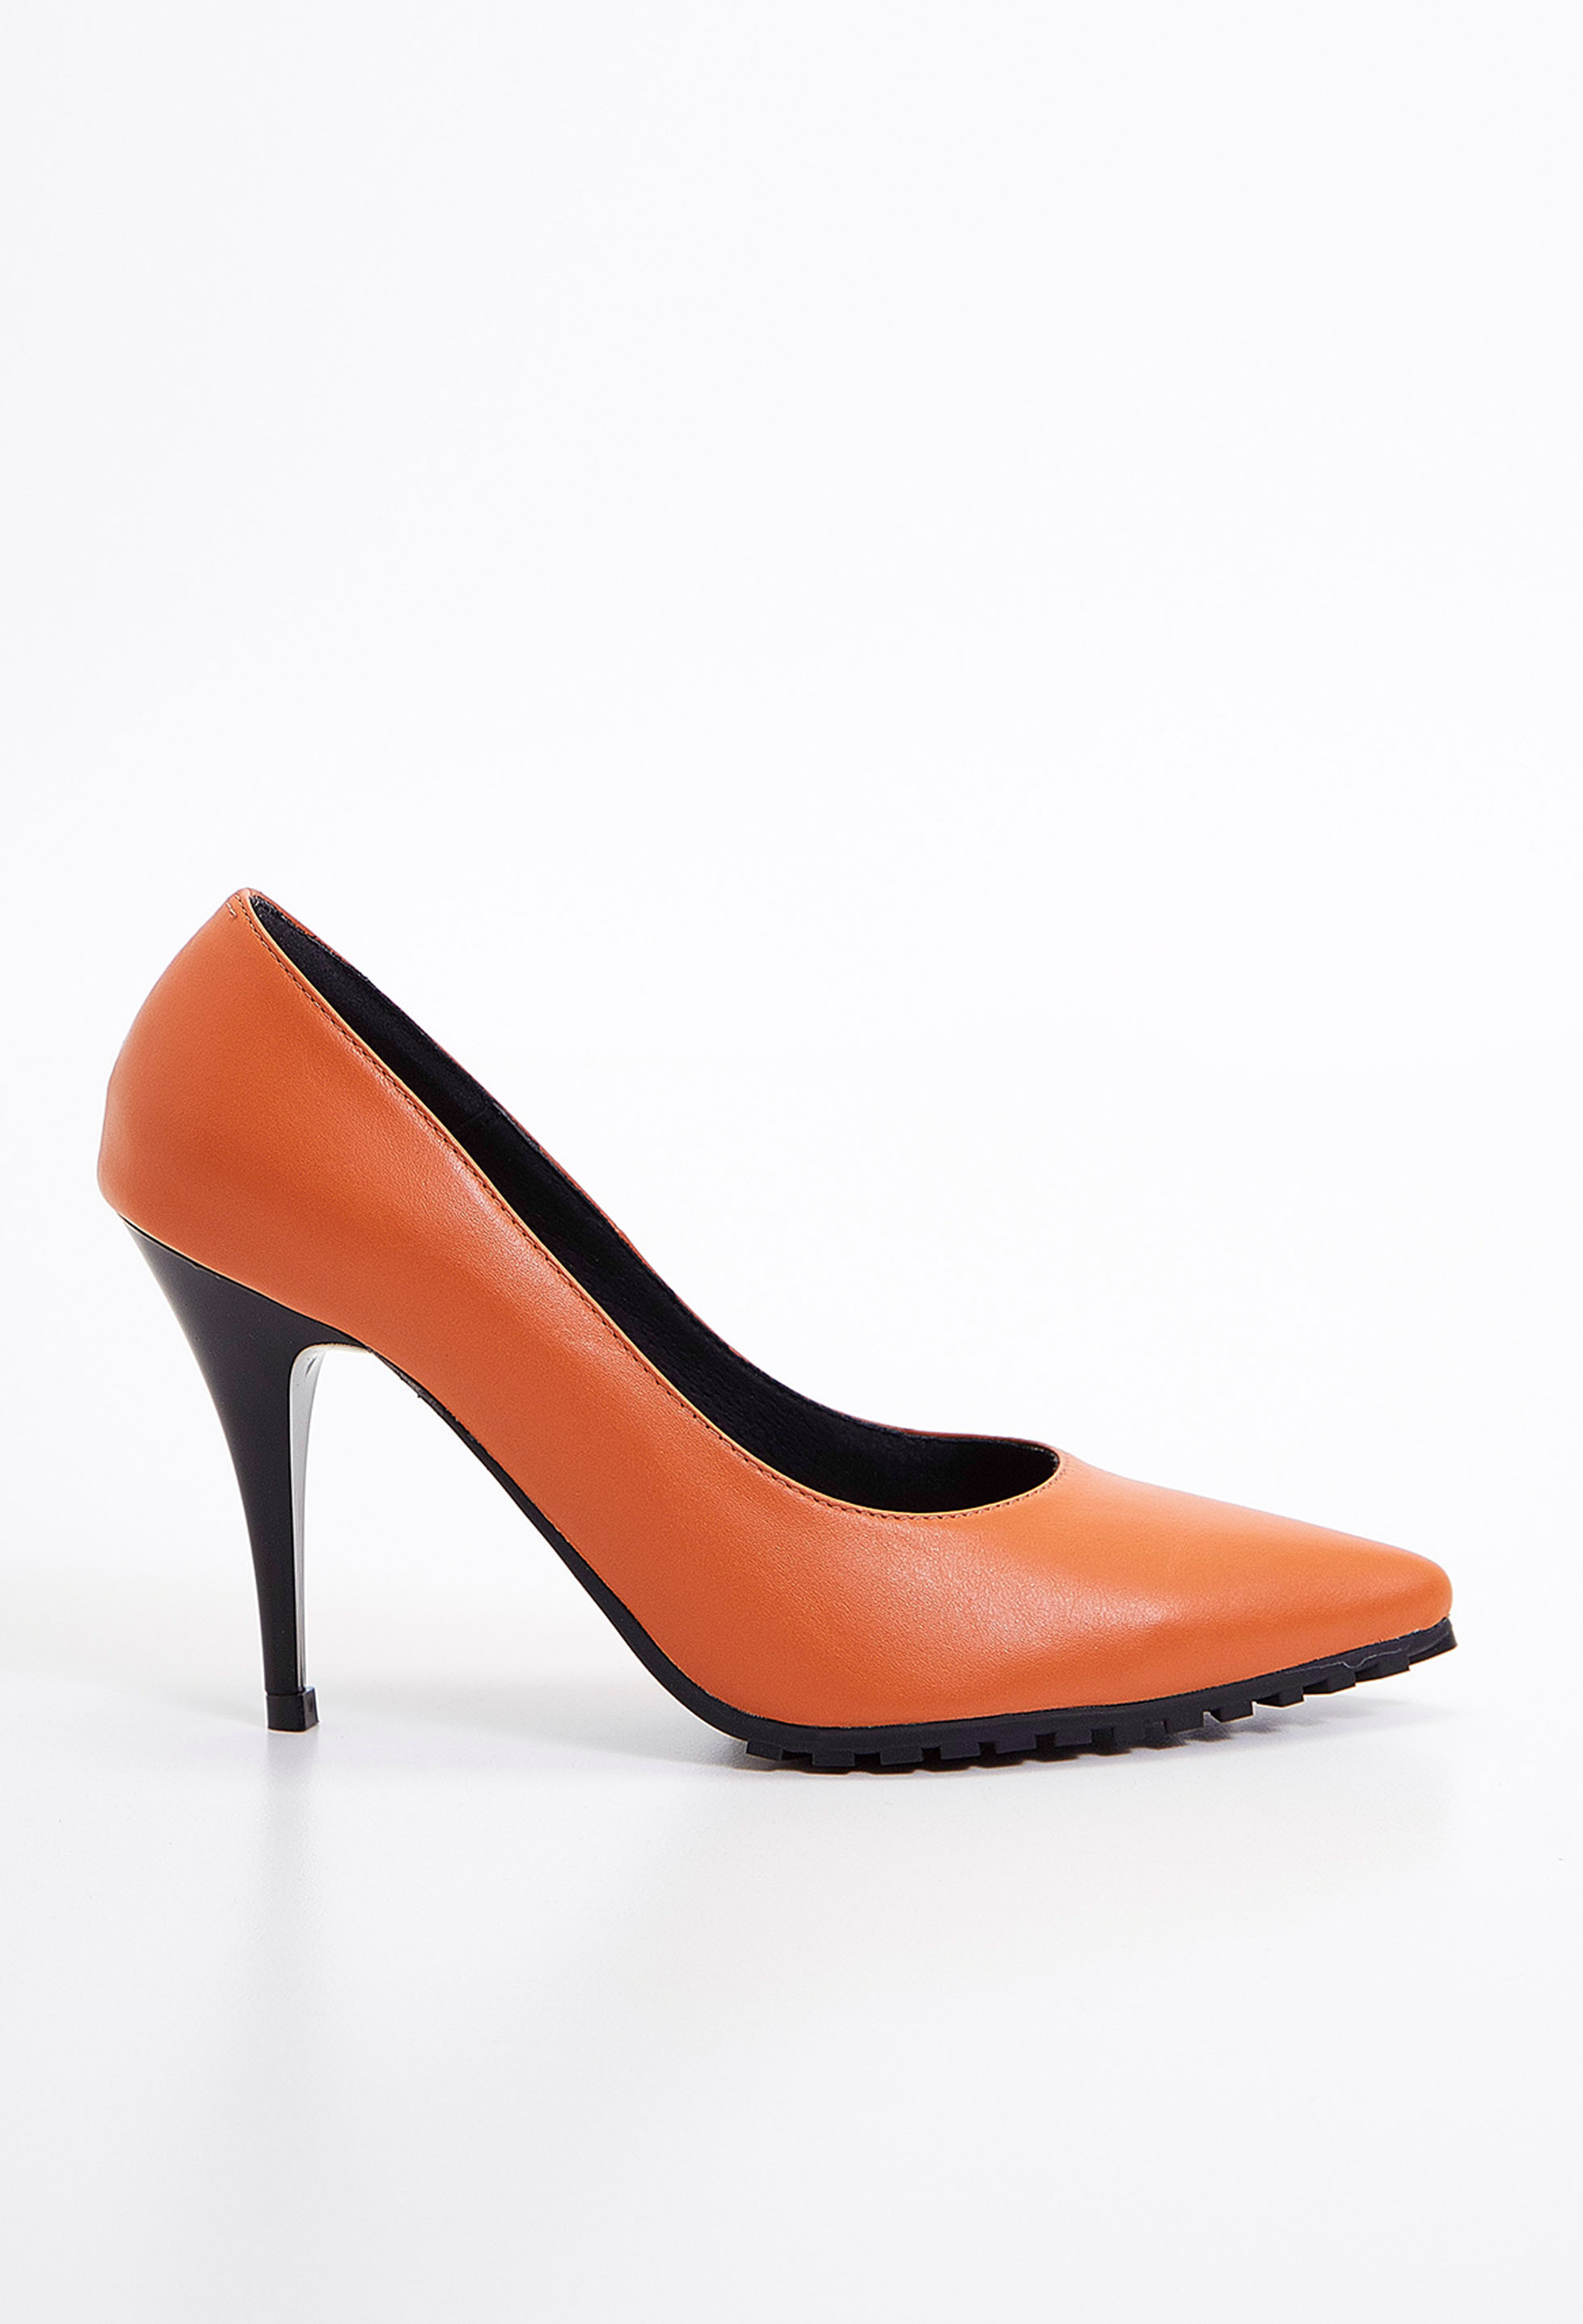 Lazaro Stiletto Dallas citric